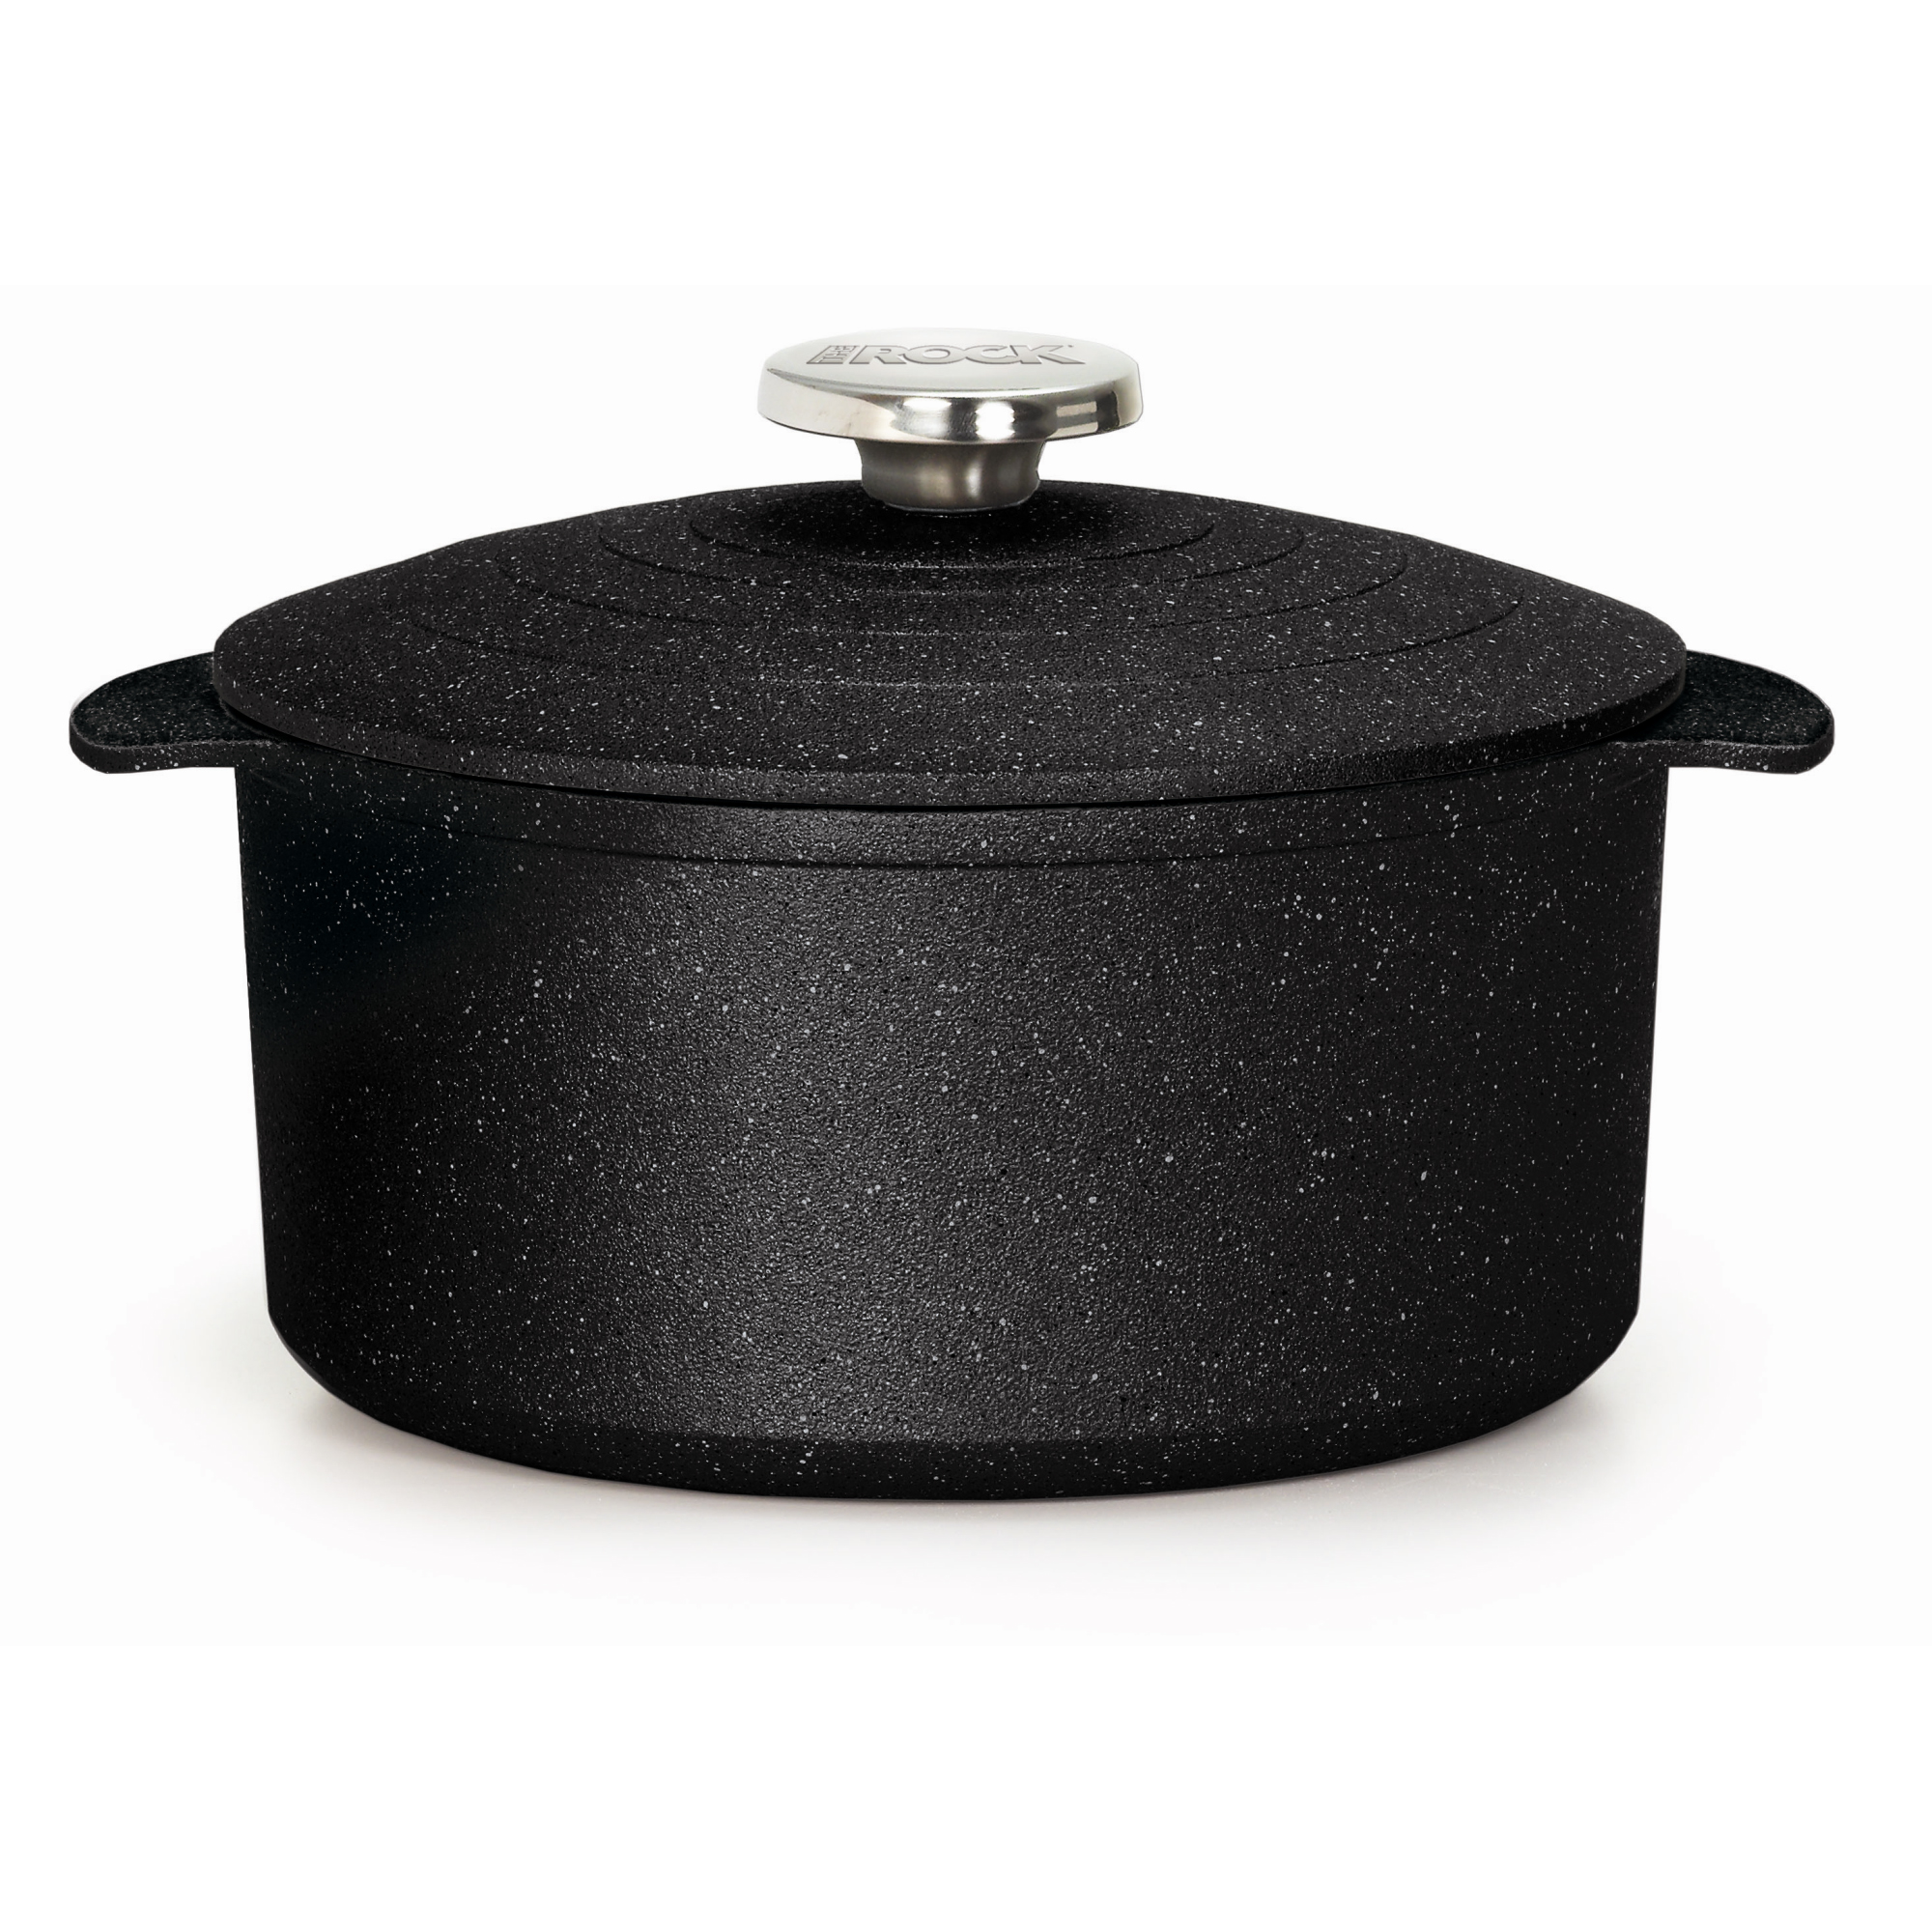 STARFRIT The Rock 4 Qt Dutch Oven/Bakeware with Lid